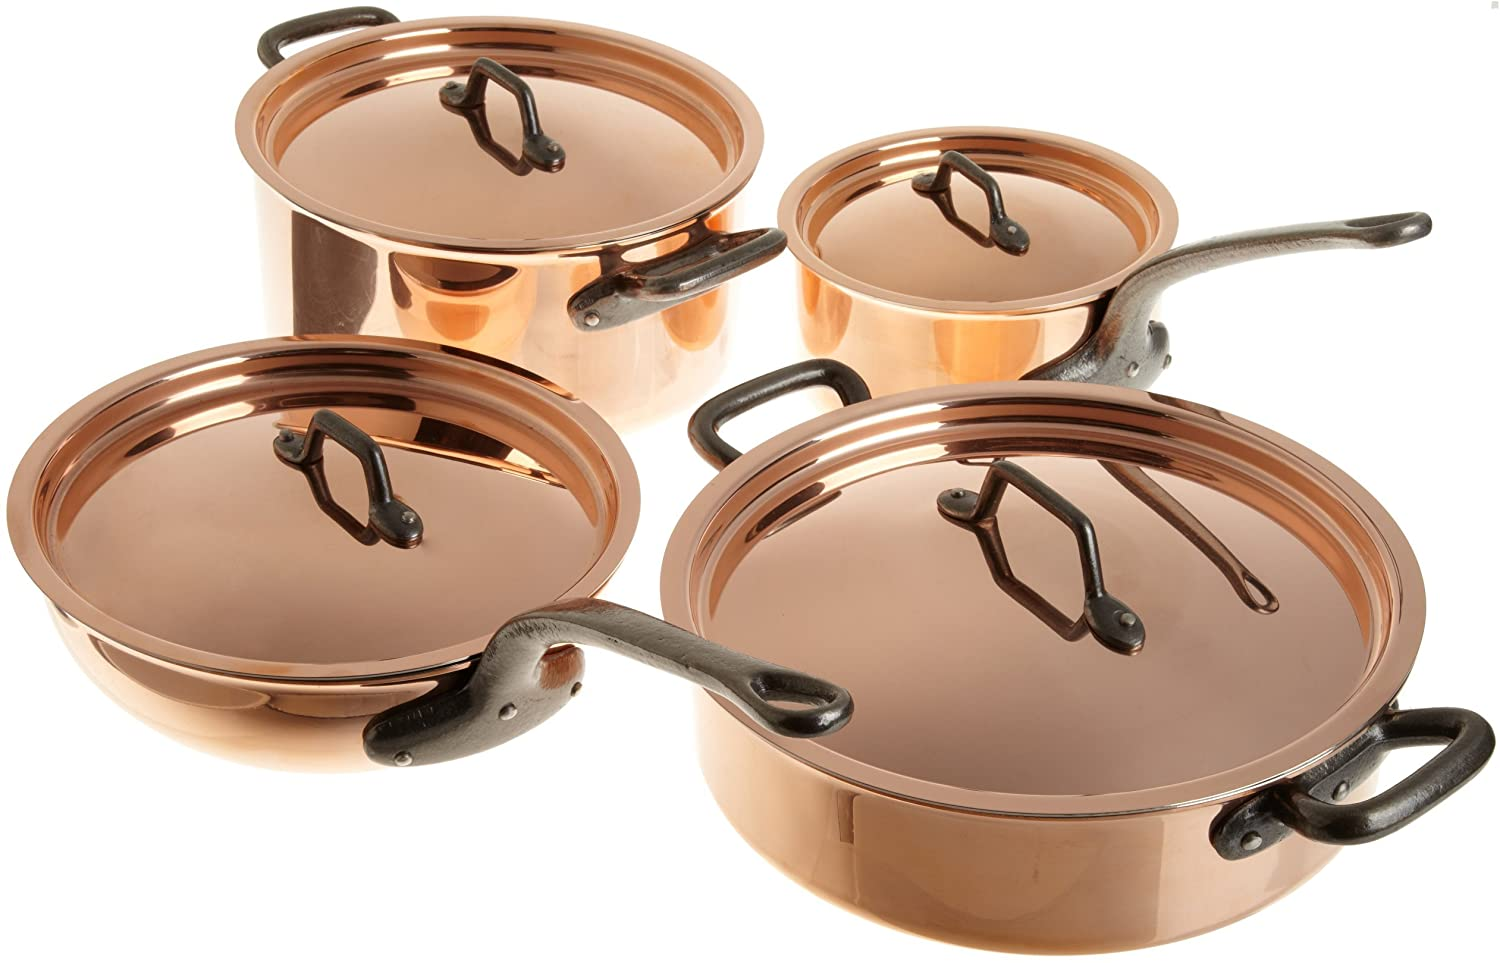 Matfer Bourgeat Matfer 915901 8 Piece Bourgeat Copper Cookware Set, B000XXBP4E